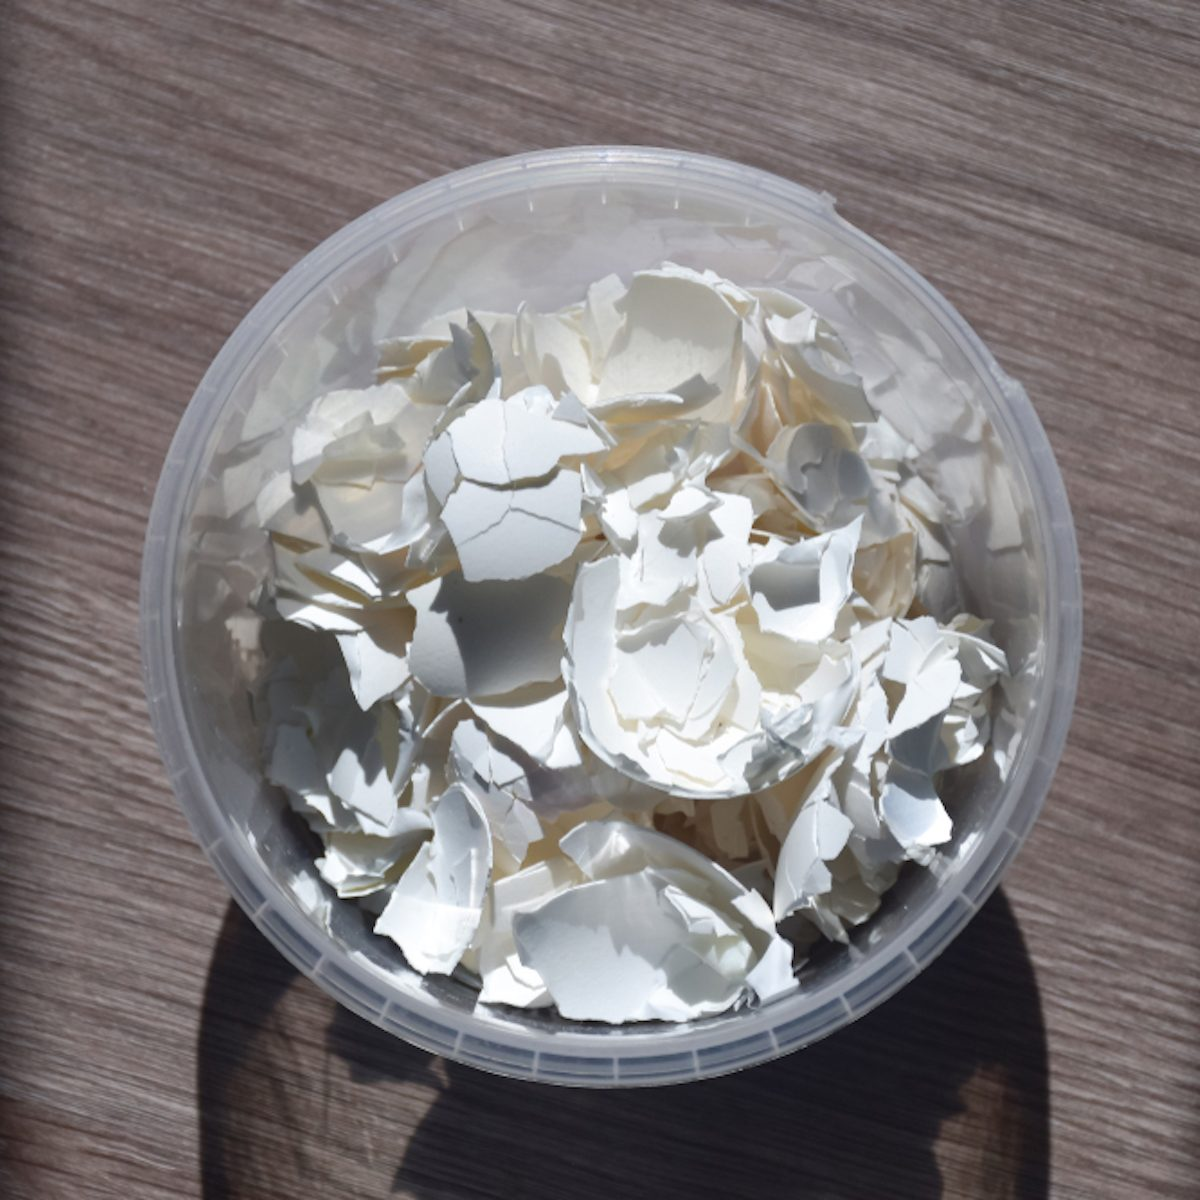 Egg shell on the table. Calcium carbonate, found naturally in the form of minerals, is part of the egg shell. Used in everyday life to alkalize the soil in gardening.